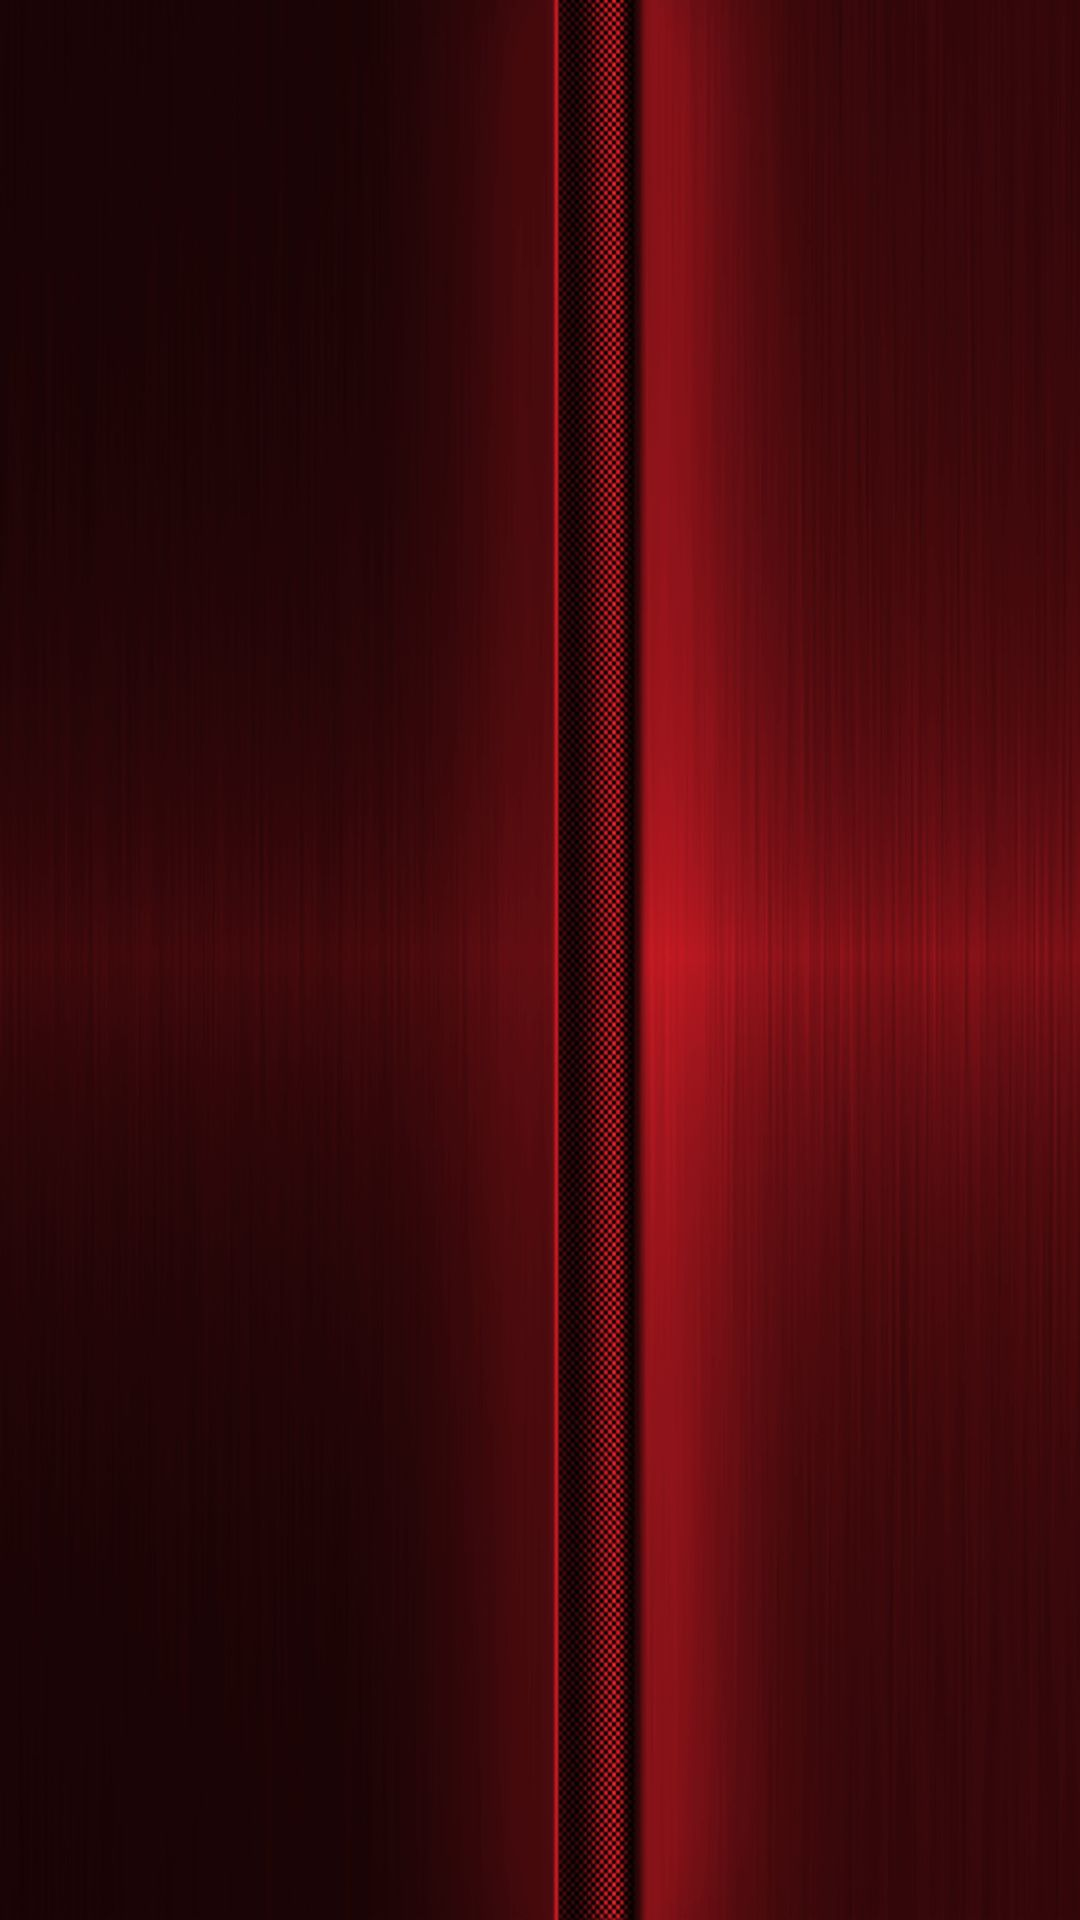 Pin By Dawn On Tlo Czerwone Red Background Dark Phone Wallpapers Dark Red Wallpaper Phone Wallpaper Patterns